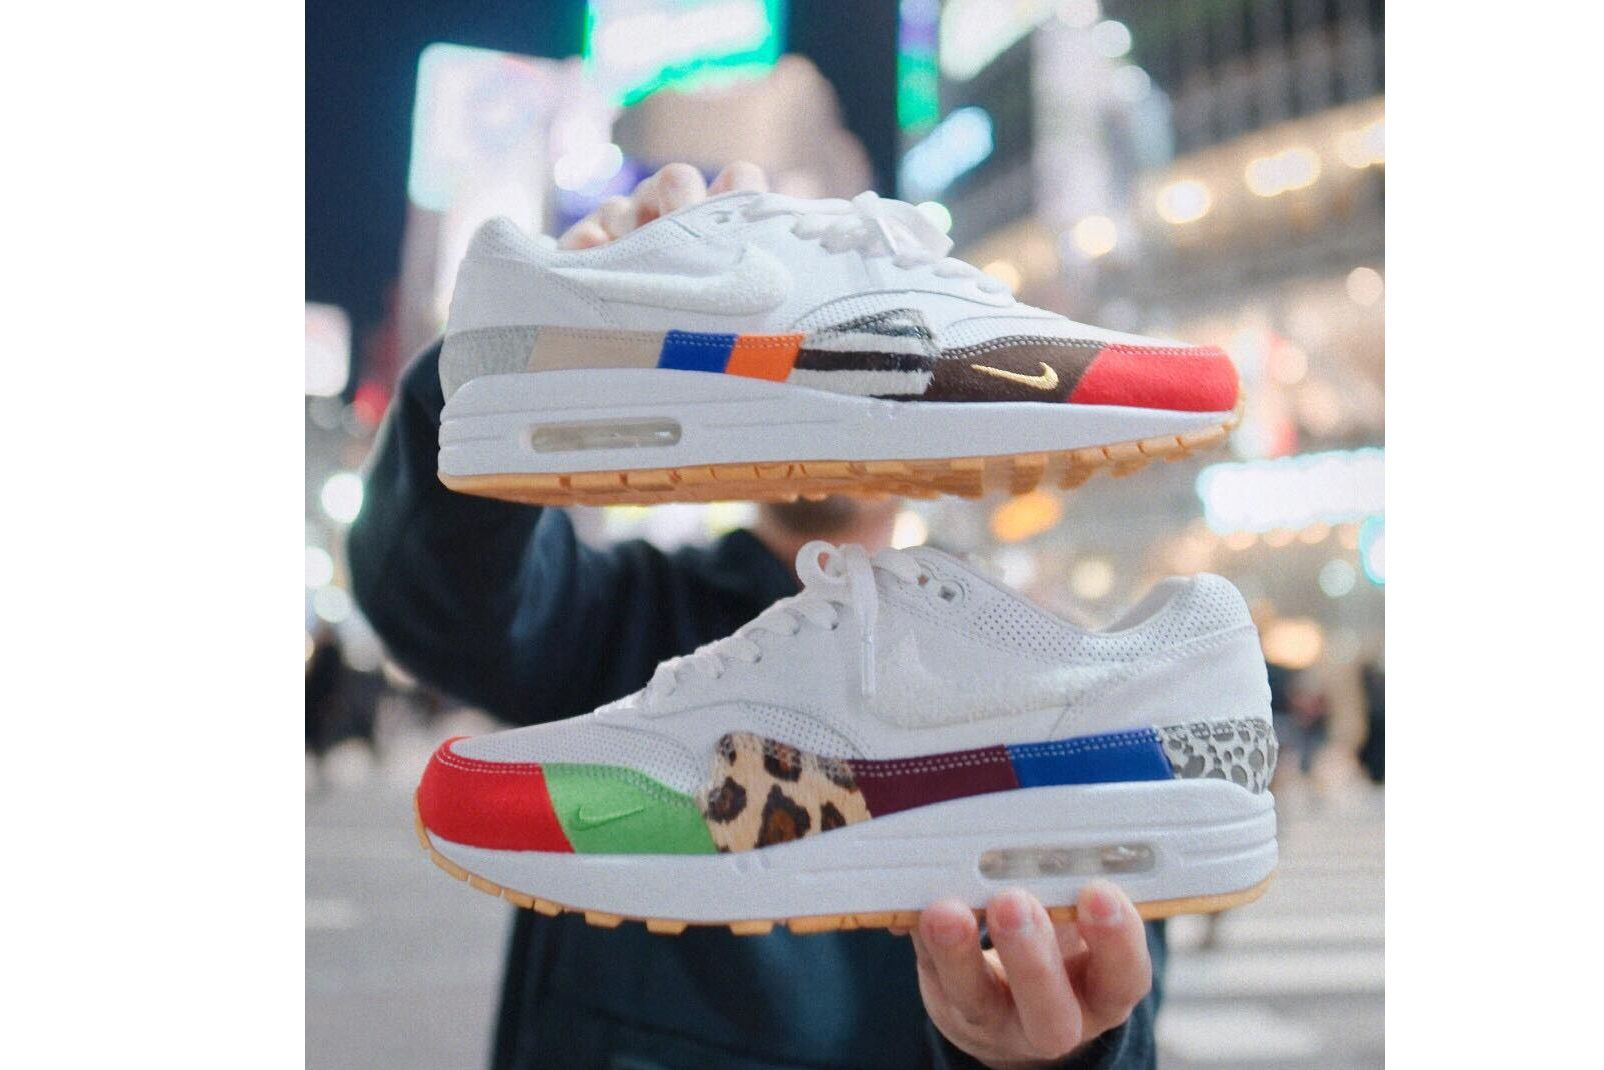 The Nike Friends and Family Air Max 1